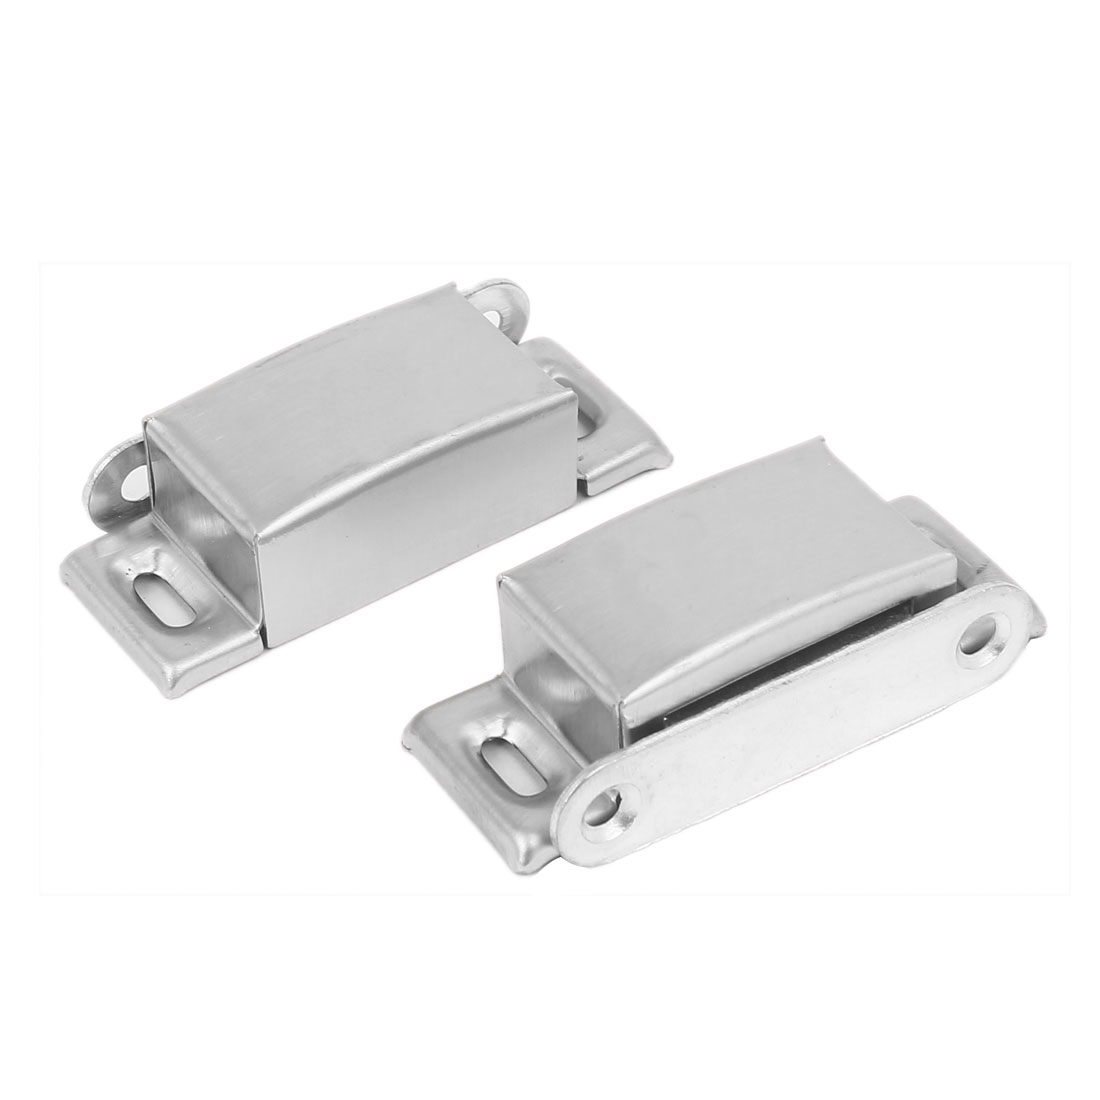 Bedroom Door Magnetic Metal Shell Catch Latch Silver Tone 65mmx26mmx18mm 2pcs